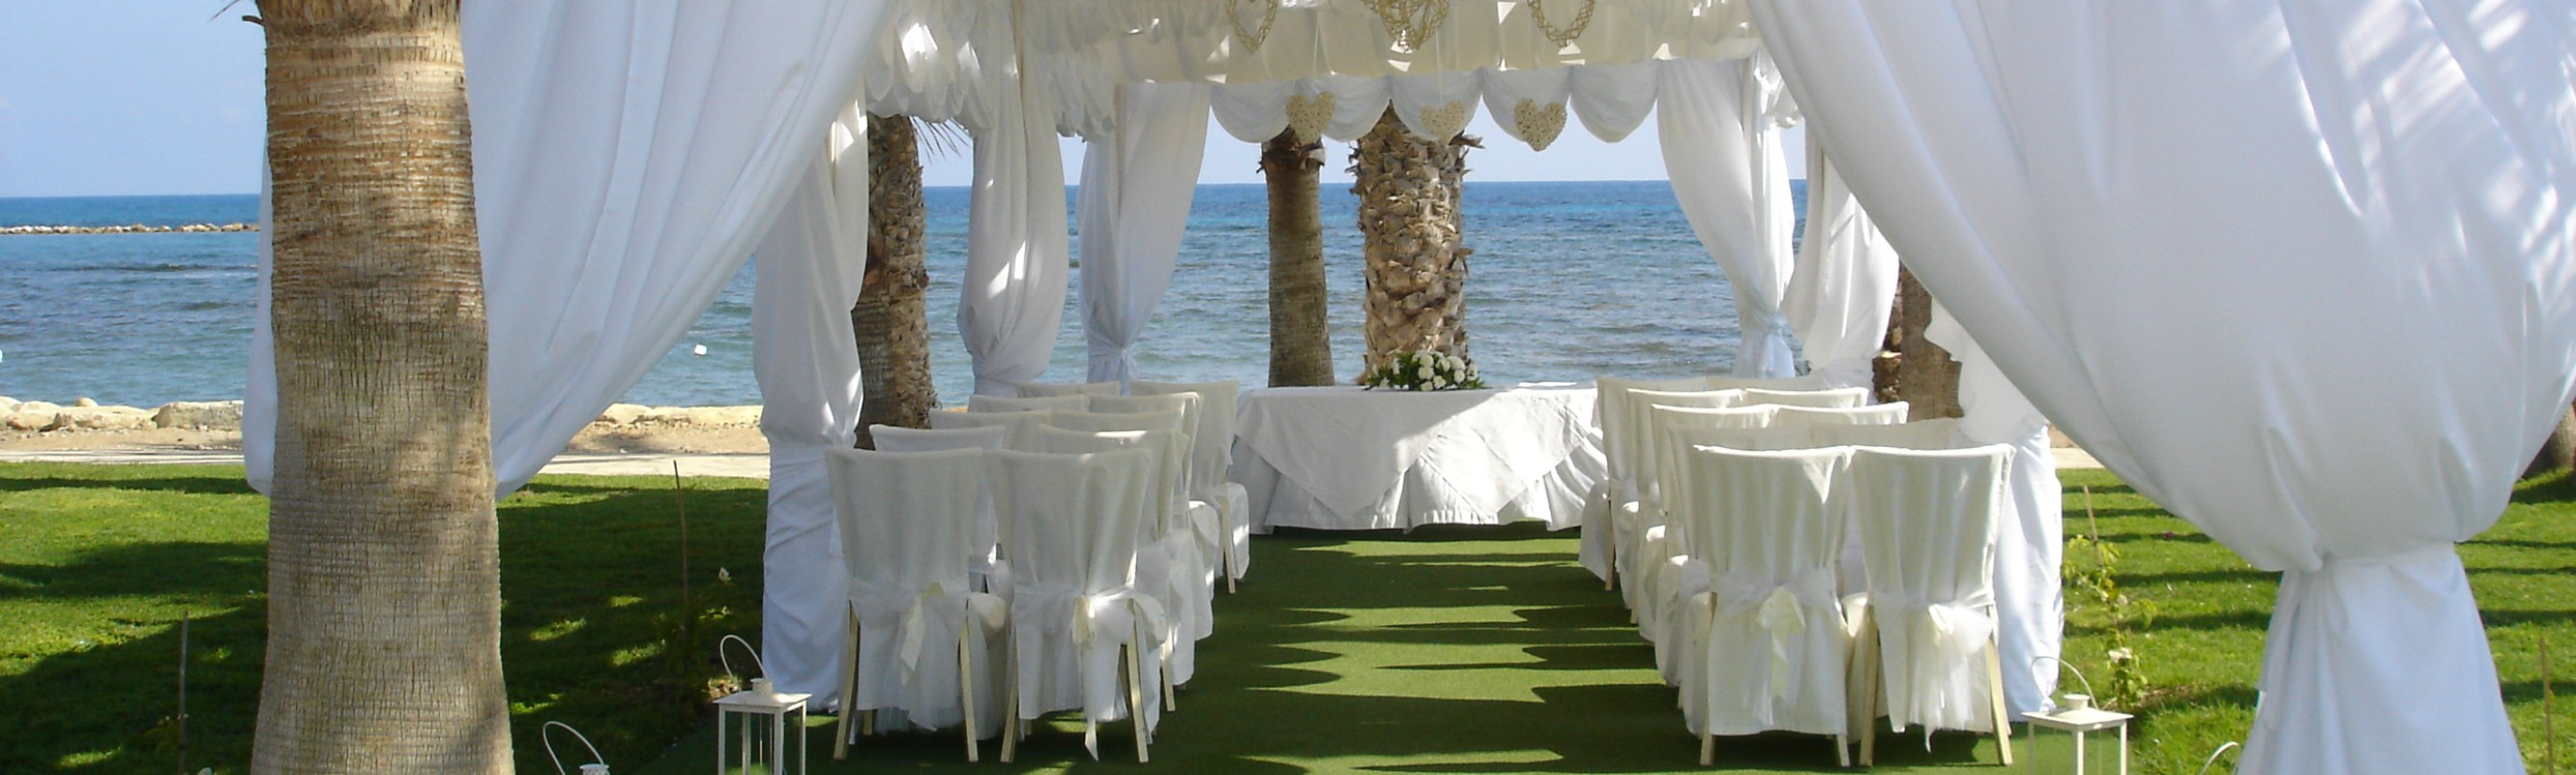 Louis_Phaethon_Beach_-_Wedding_gazebo_0001.jpg